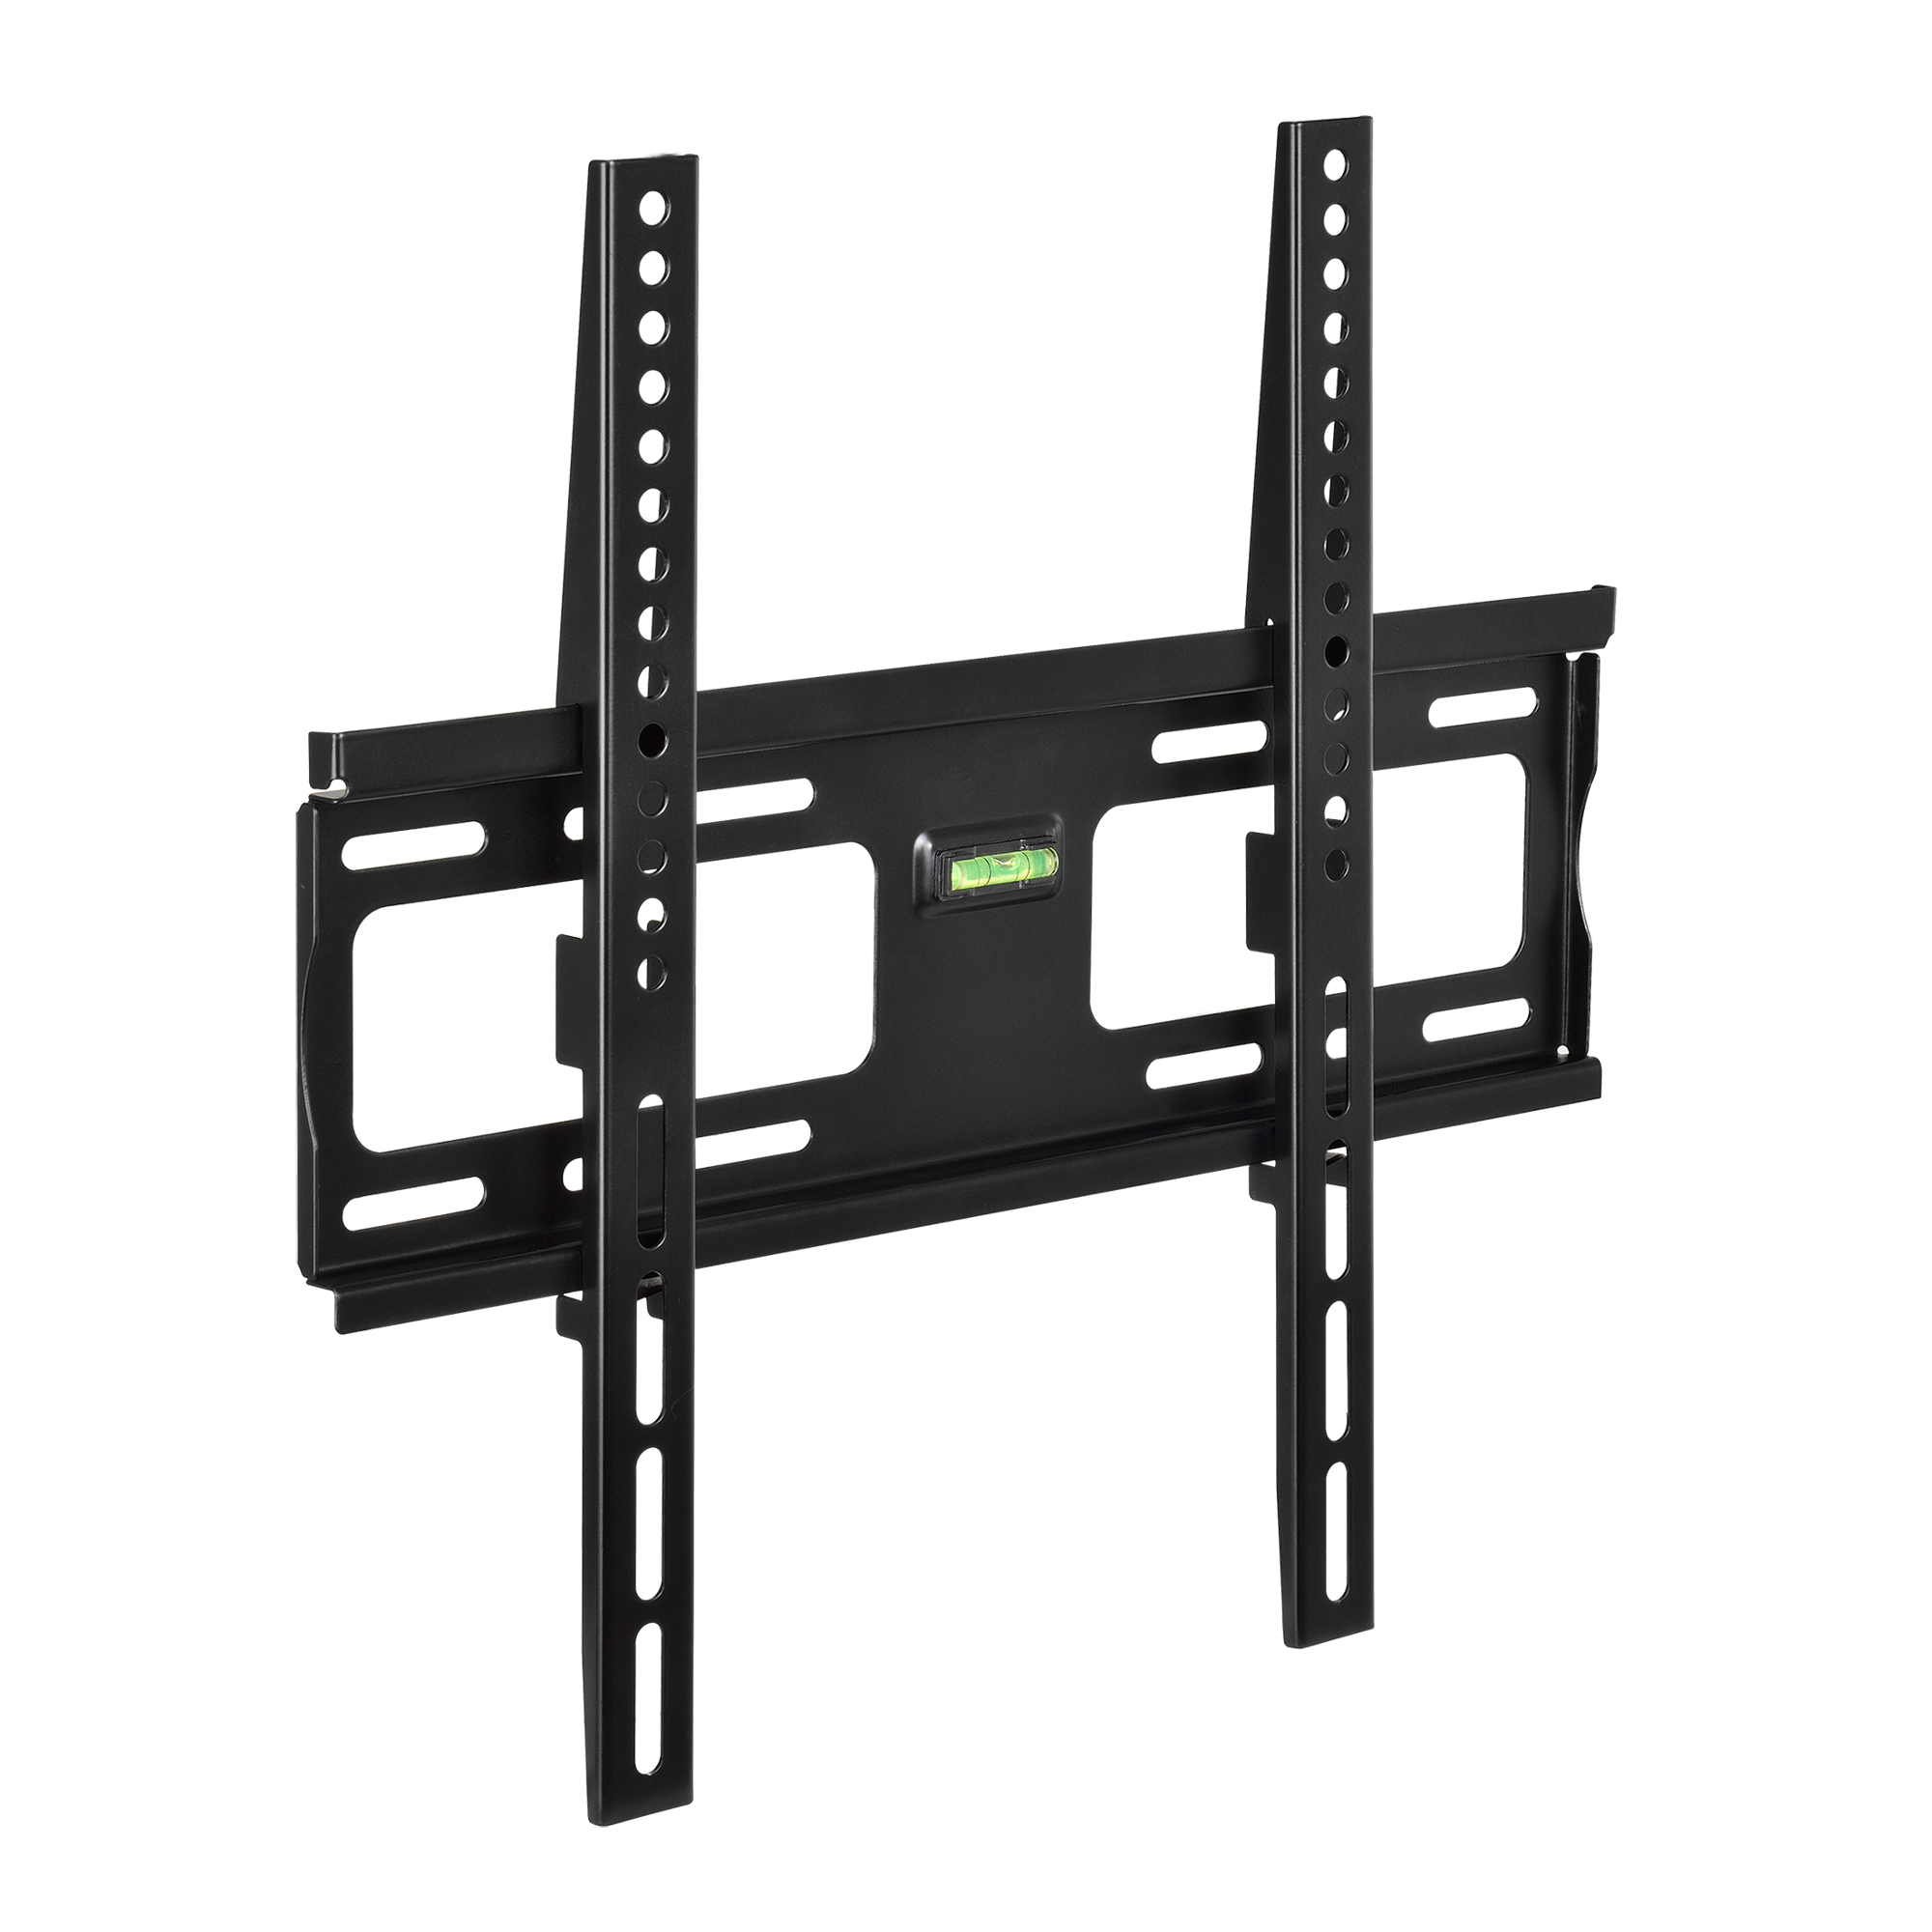 wandhalter lcd led tv fernseher wandhalterung halterung bildschirm ebay. Black Bedroom Furniture Sets. Home Design Ideas